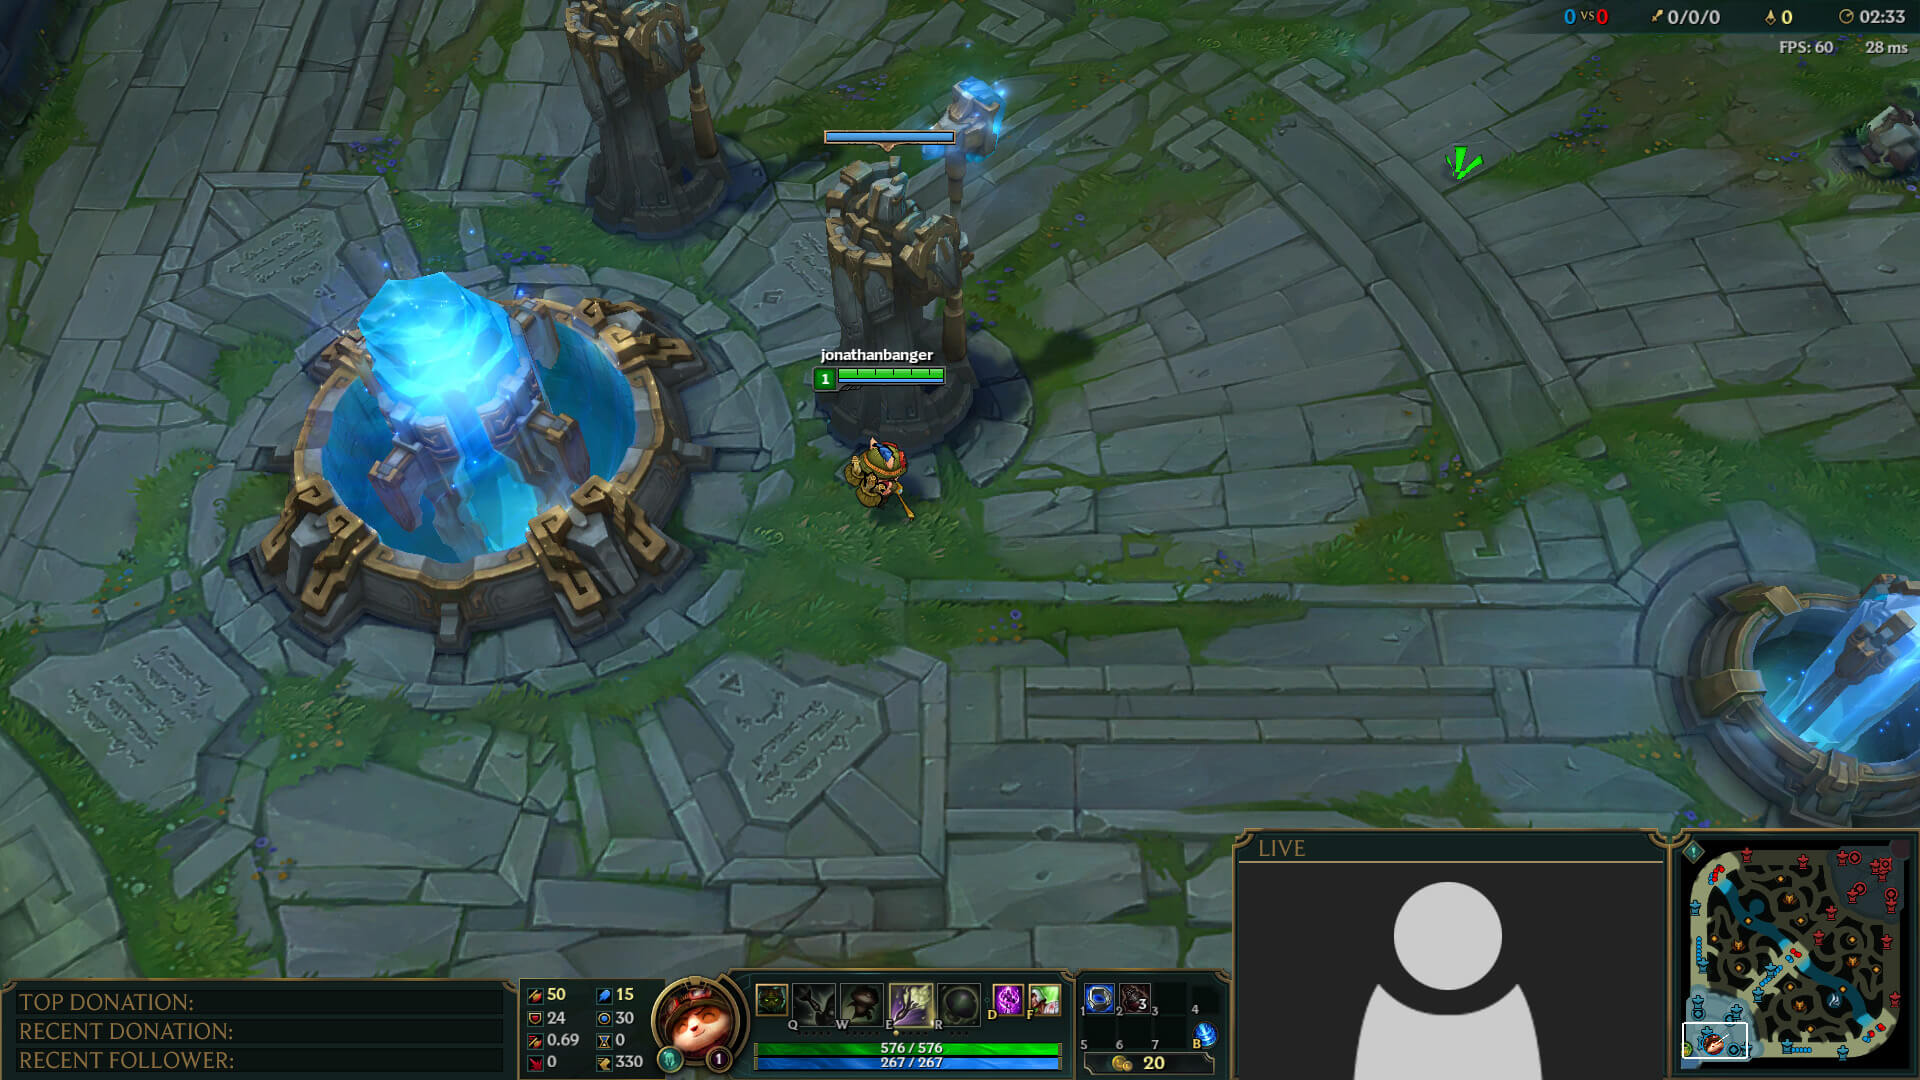 twitch overlay for lol